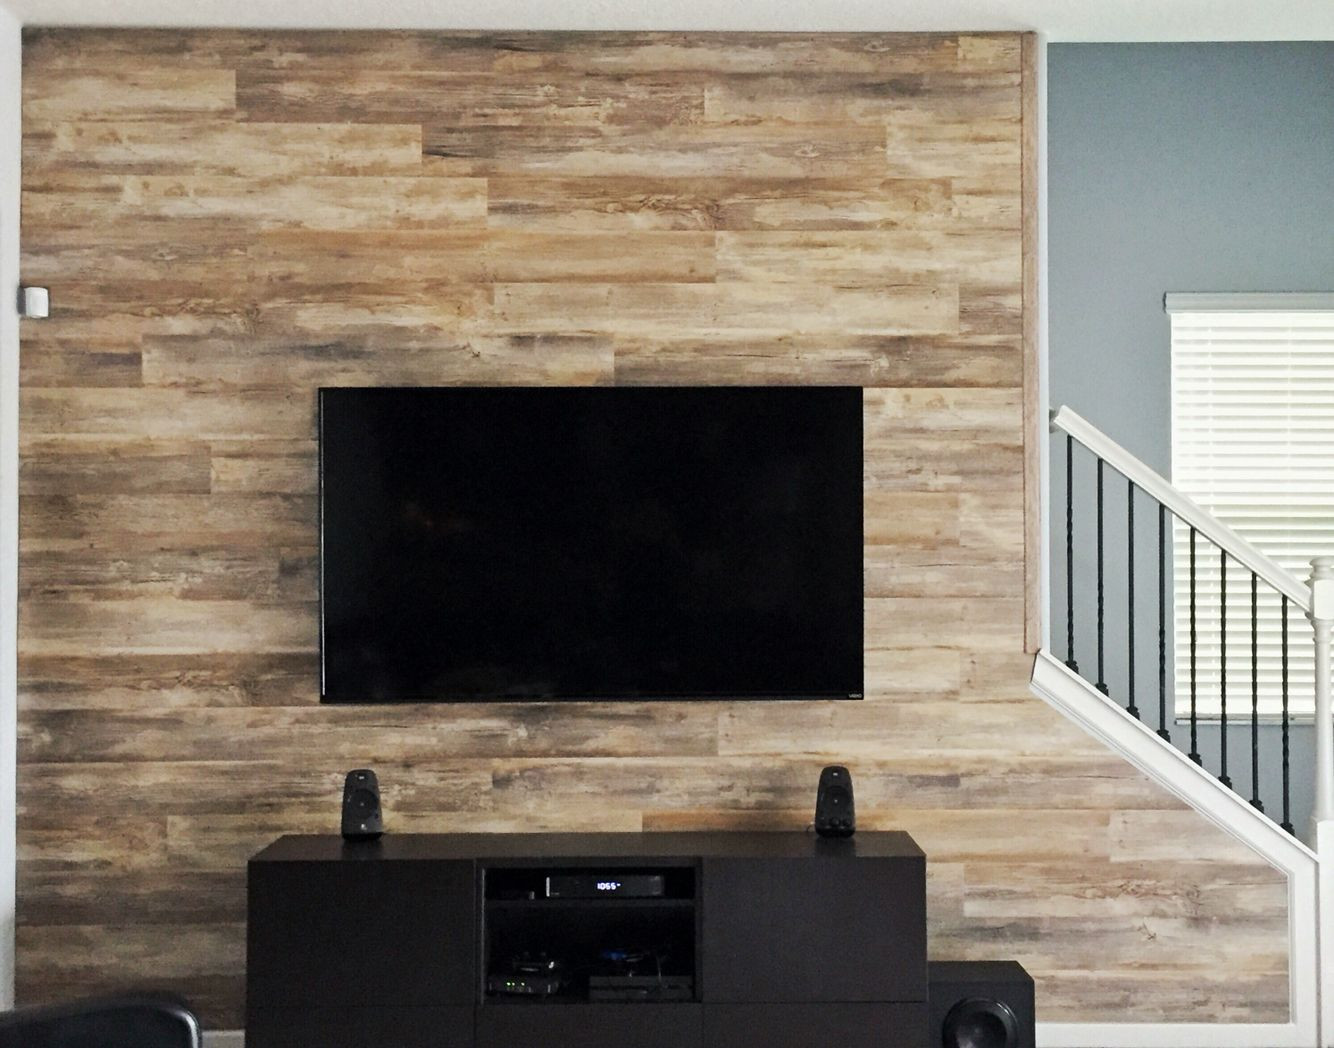 Higgins Hardwood Flooring Reviews Of Wood Wall We Installed In Our Home This is Wood Laminate Flooring with Regard to Wood Wall We Installed In Our Home This is Wood Laminate Flooring We Moved